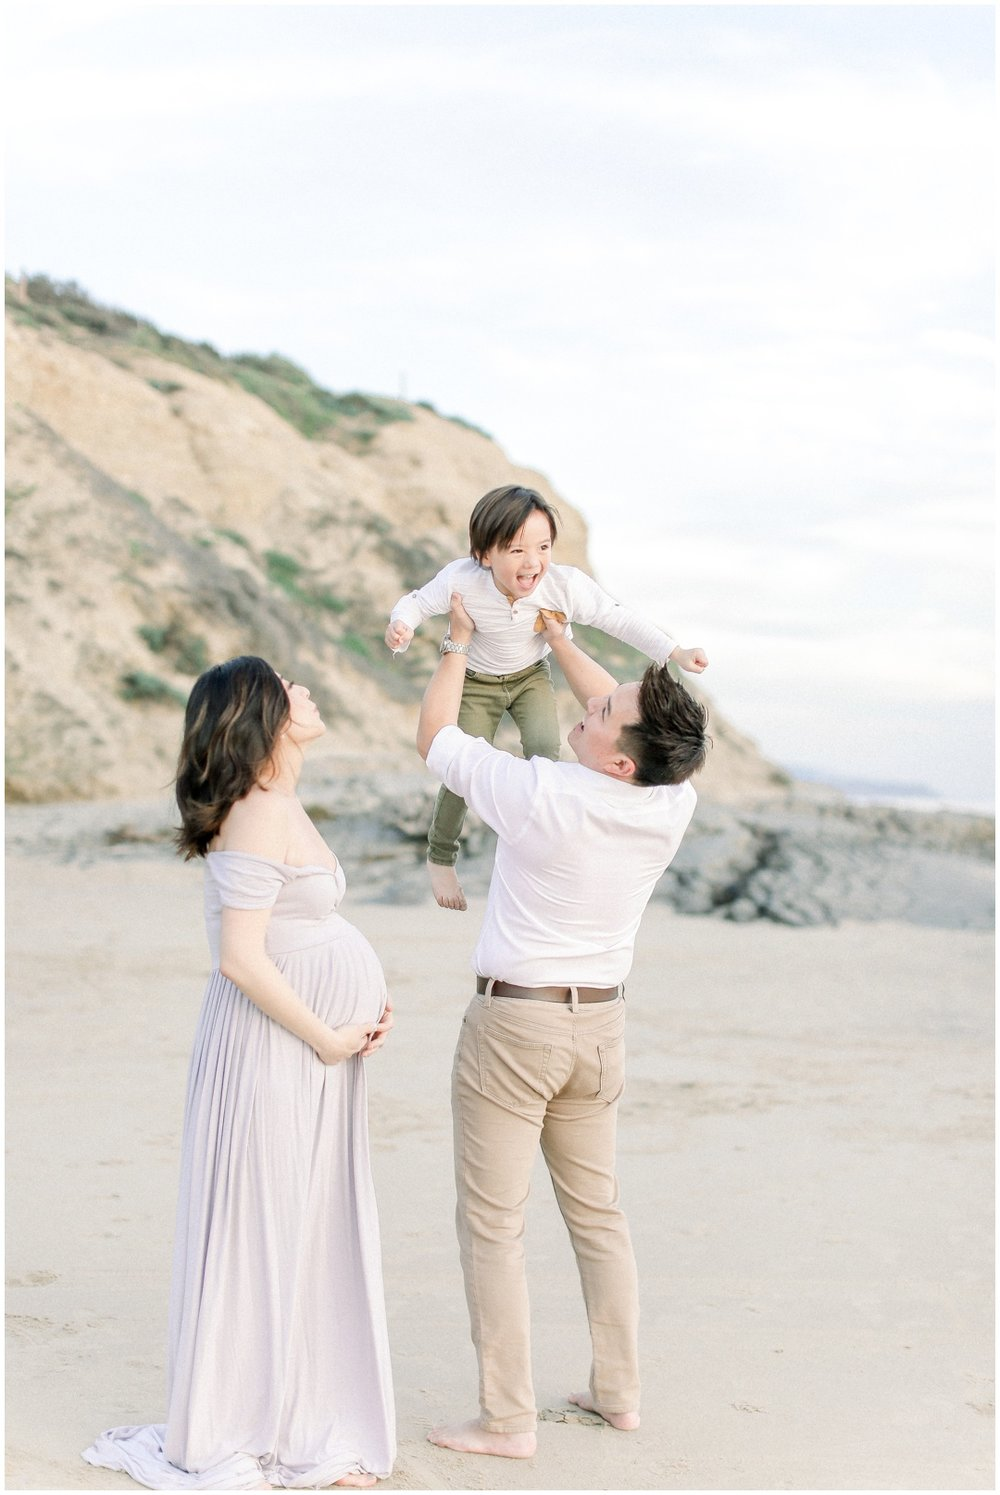 Newport_Beach_Newborn_Photographer_Newport_Beach_Maternity_Photographer_Orange_County_Family_Photographer_Cori_Kleckner_Photography_Huntington_Beach_Photographer_The_Perez_Family_OC_Maternity__2976.jpg